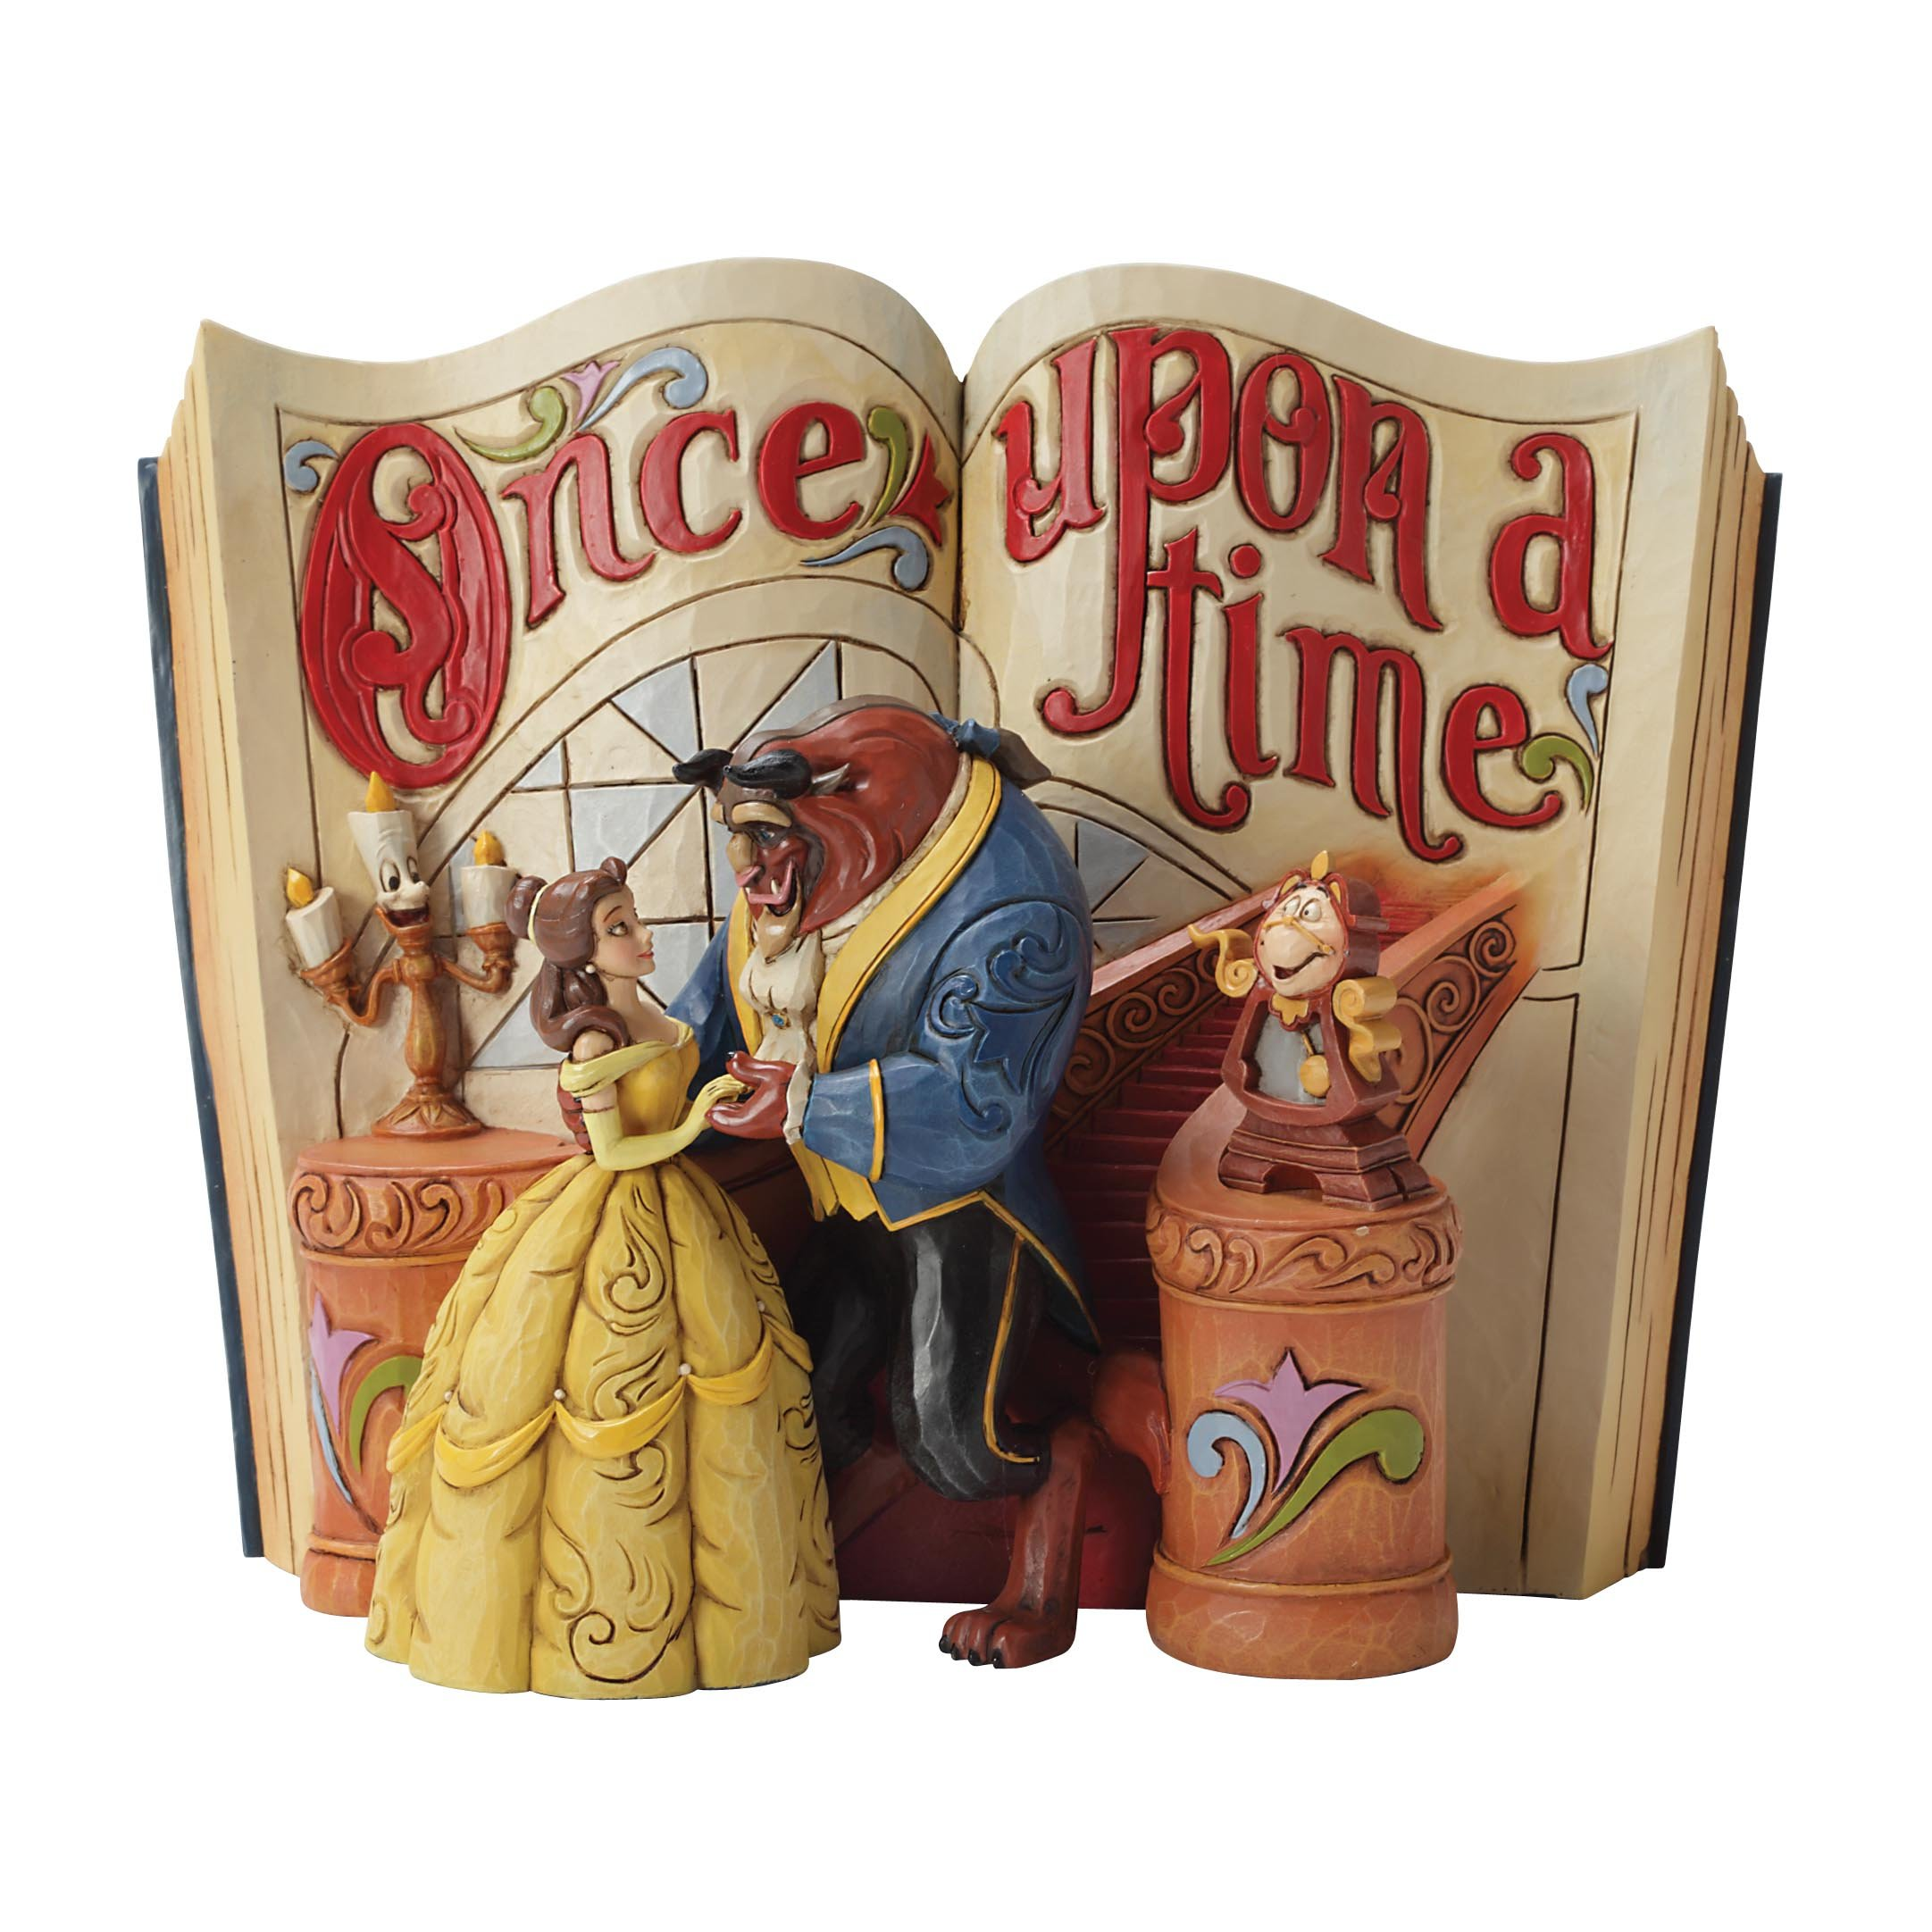 "Disney Traditions by Jim Shore ""Beauty and the Beast"" Storybook Stone Resin Figurine, 6"" by Enesco"